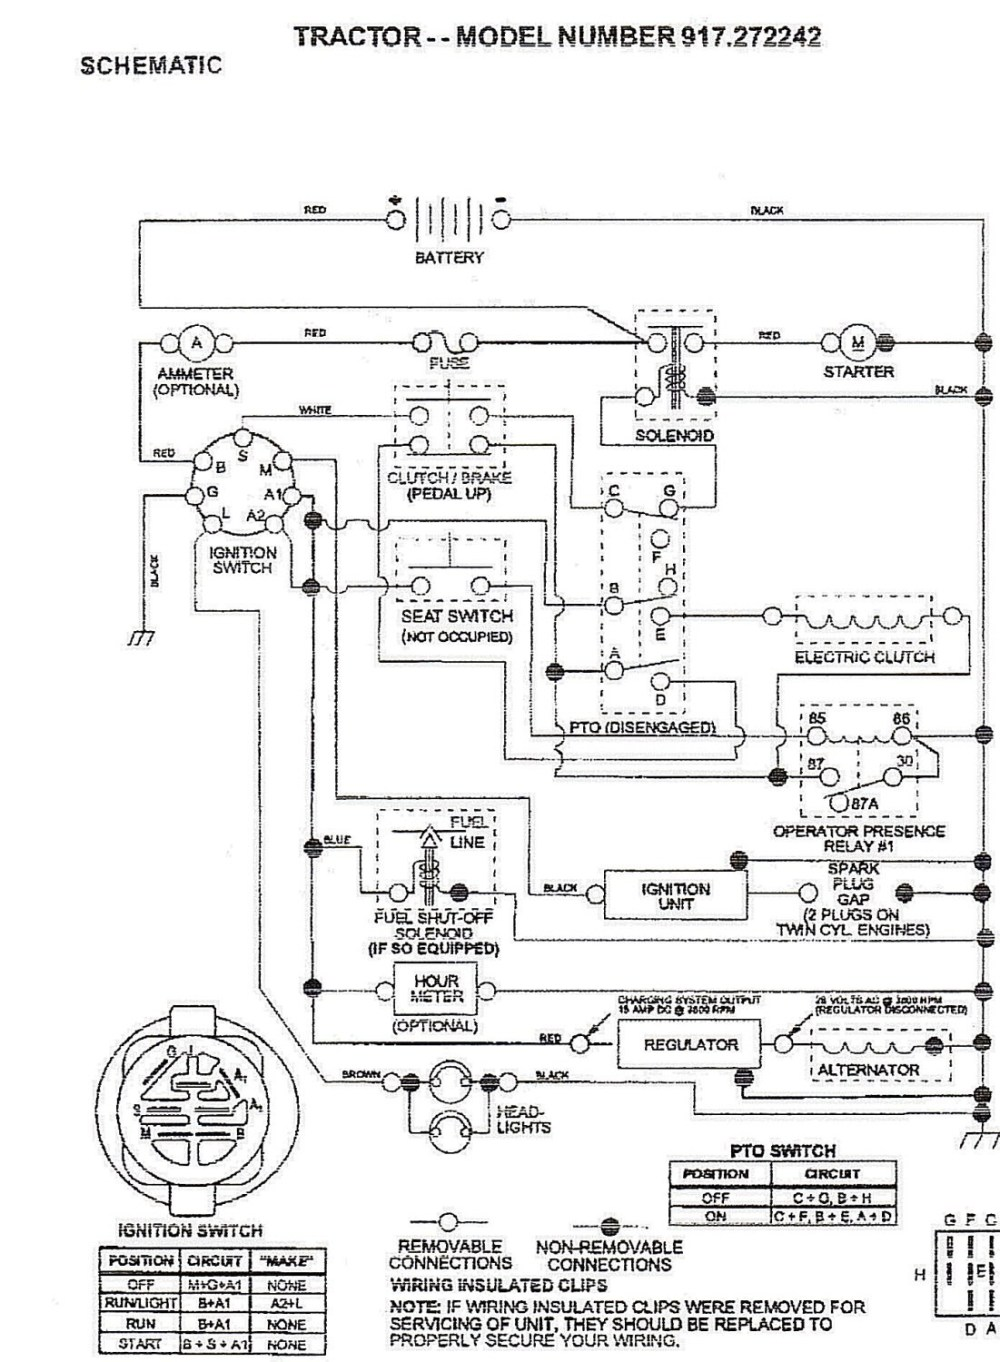 medium resolution of 10 hp briggs and stratton carb diagram wiring wiring diagram 5 hp briggs stratton electrical diagram